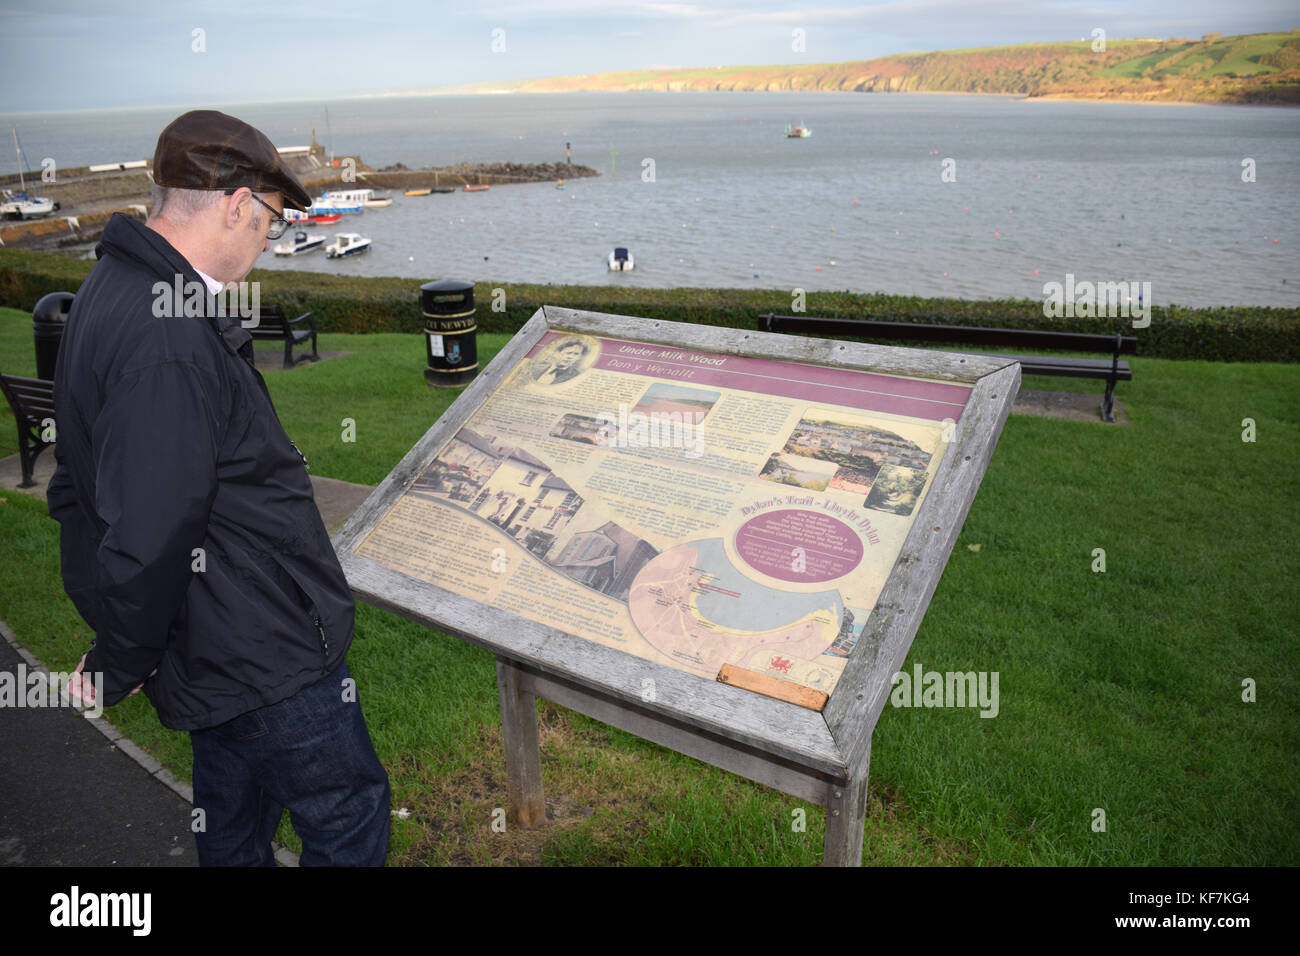 New Quay, Ceredigion, Wales. Tourist information board - Dylan Thomas wrote Under Milkwood here - Stock Image